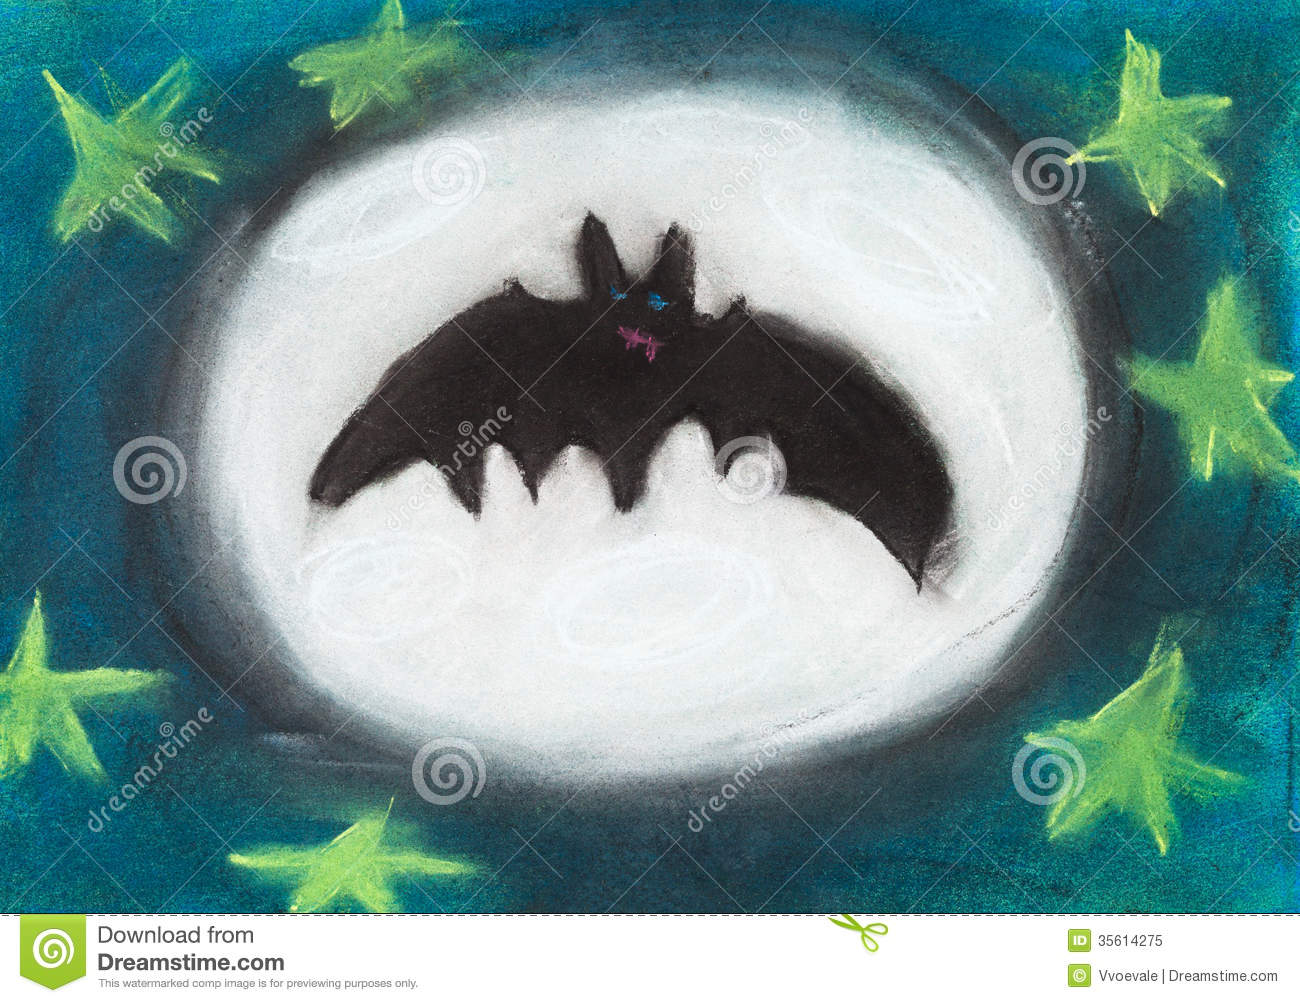 Kids at night with moon royalty free stock photography image - Children Drawing Flying Night Bat Royalty Free Stock Photo